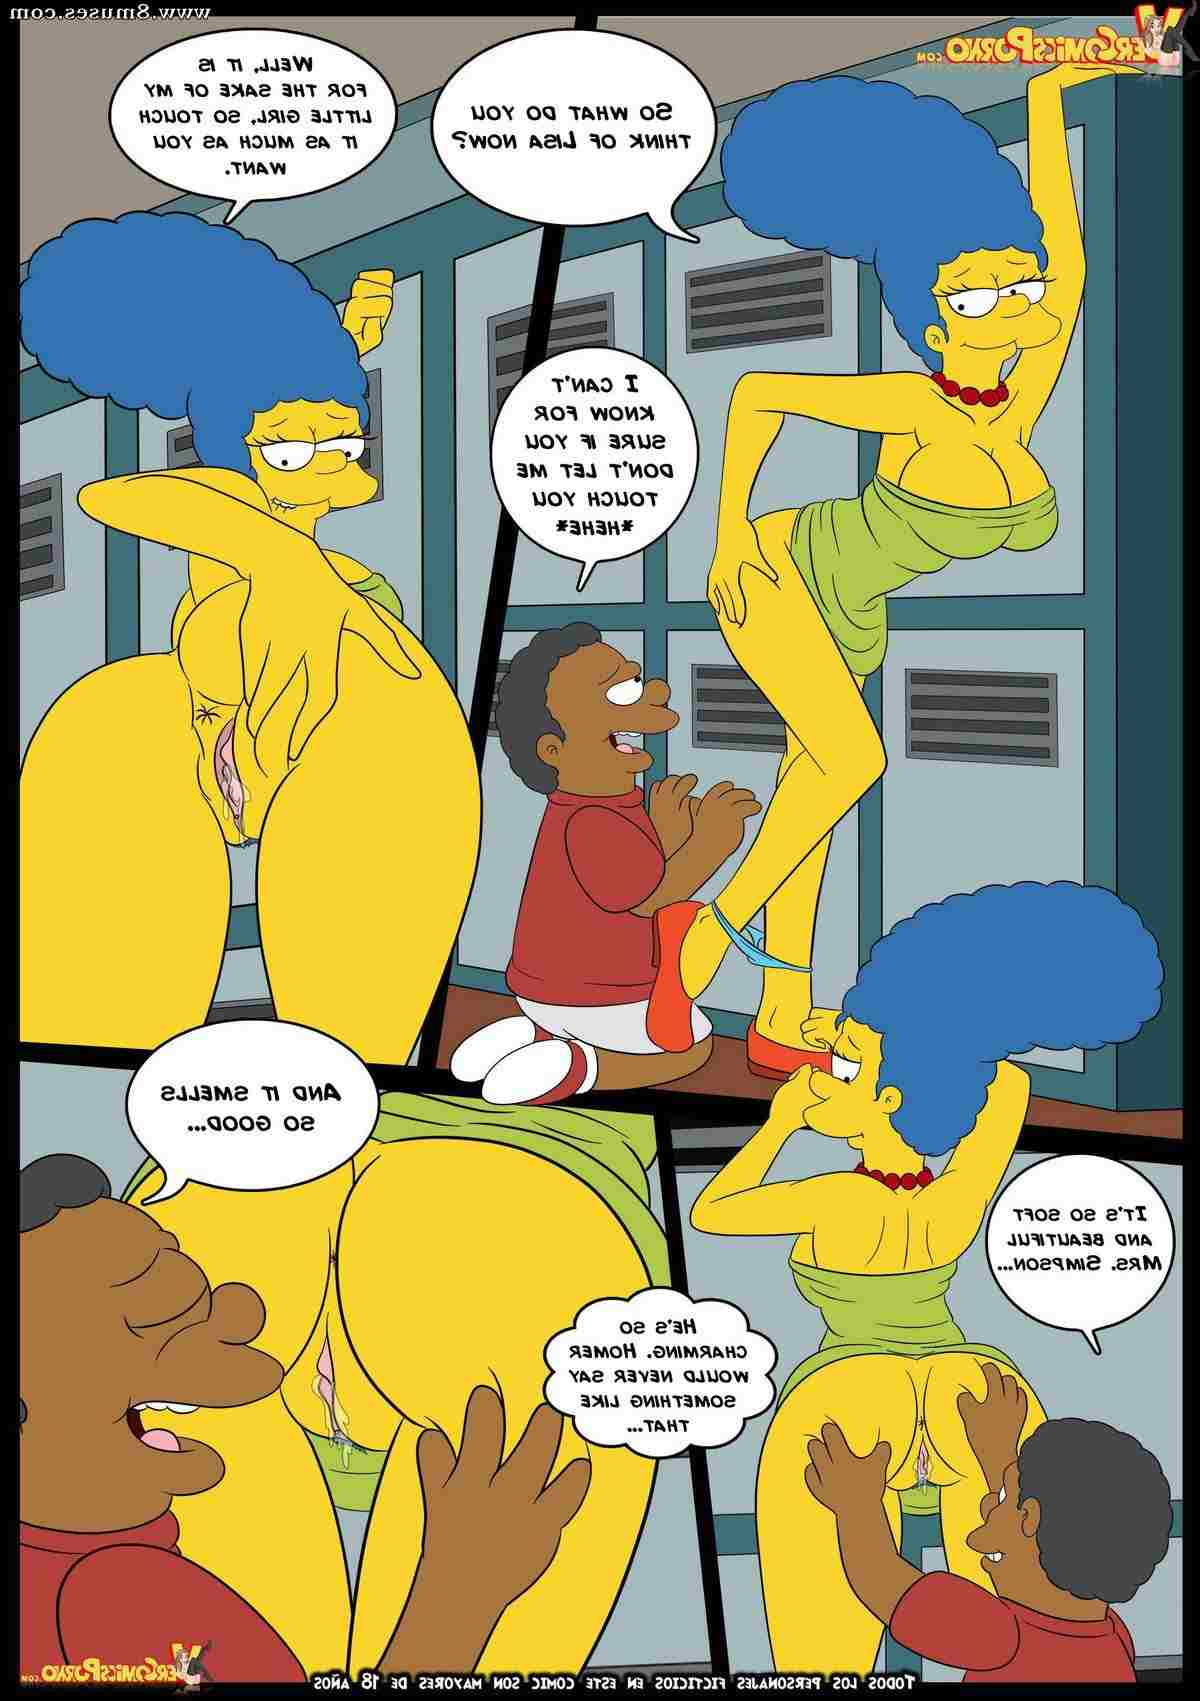 Croc-Comics/The-Simpsons-Love-for-the-Bully The_Simpsons_-_Love_for_the_Bully__8muses_-_Sex_and_Porn_Comics_7.jpg